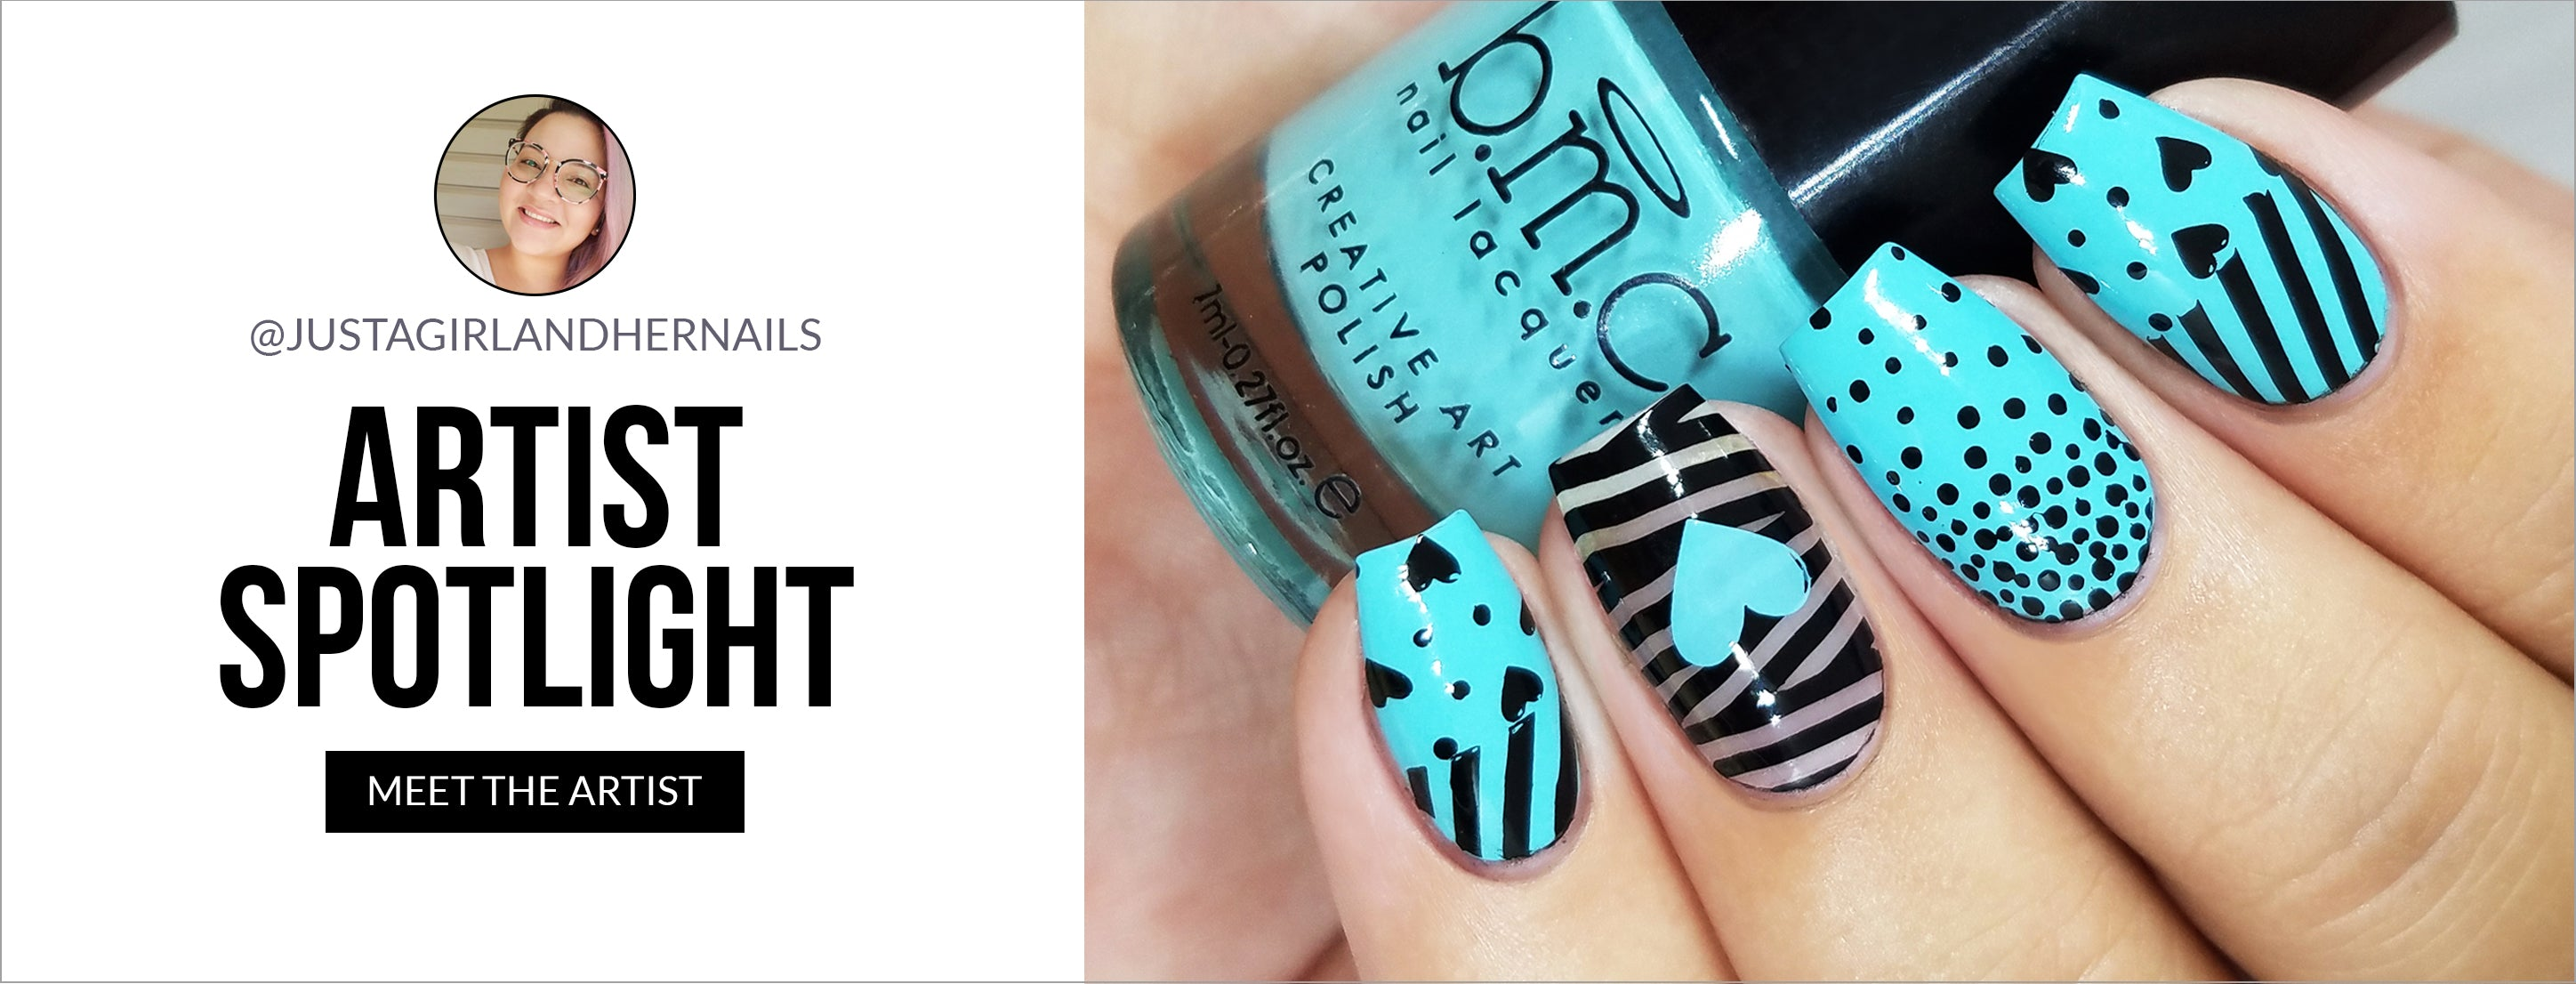 See How @justagirlandhernails Gets Creatively Inspired! | Meet the Artist